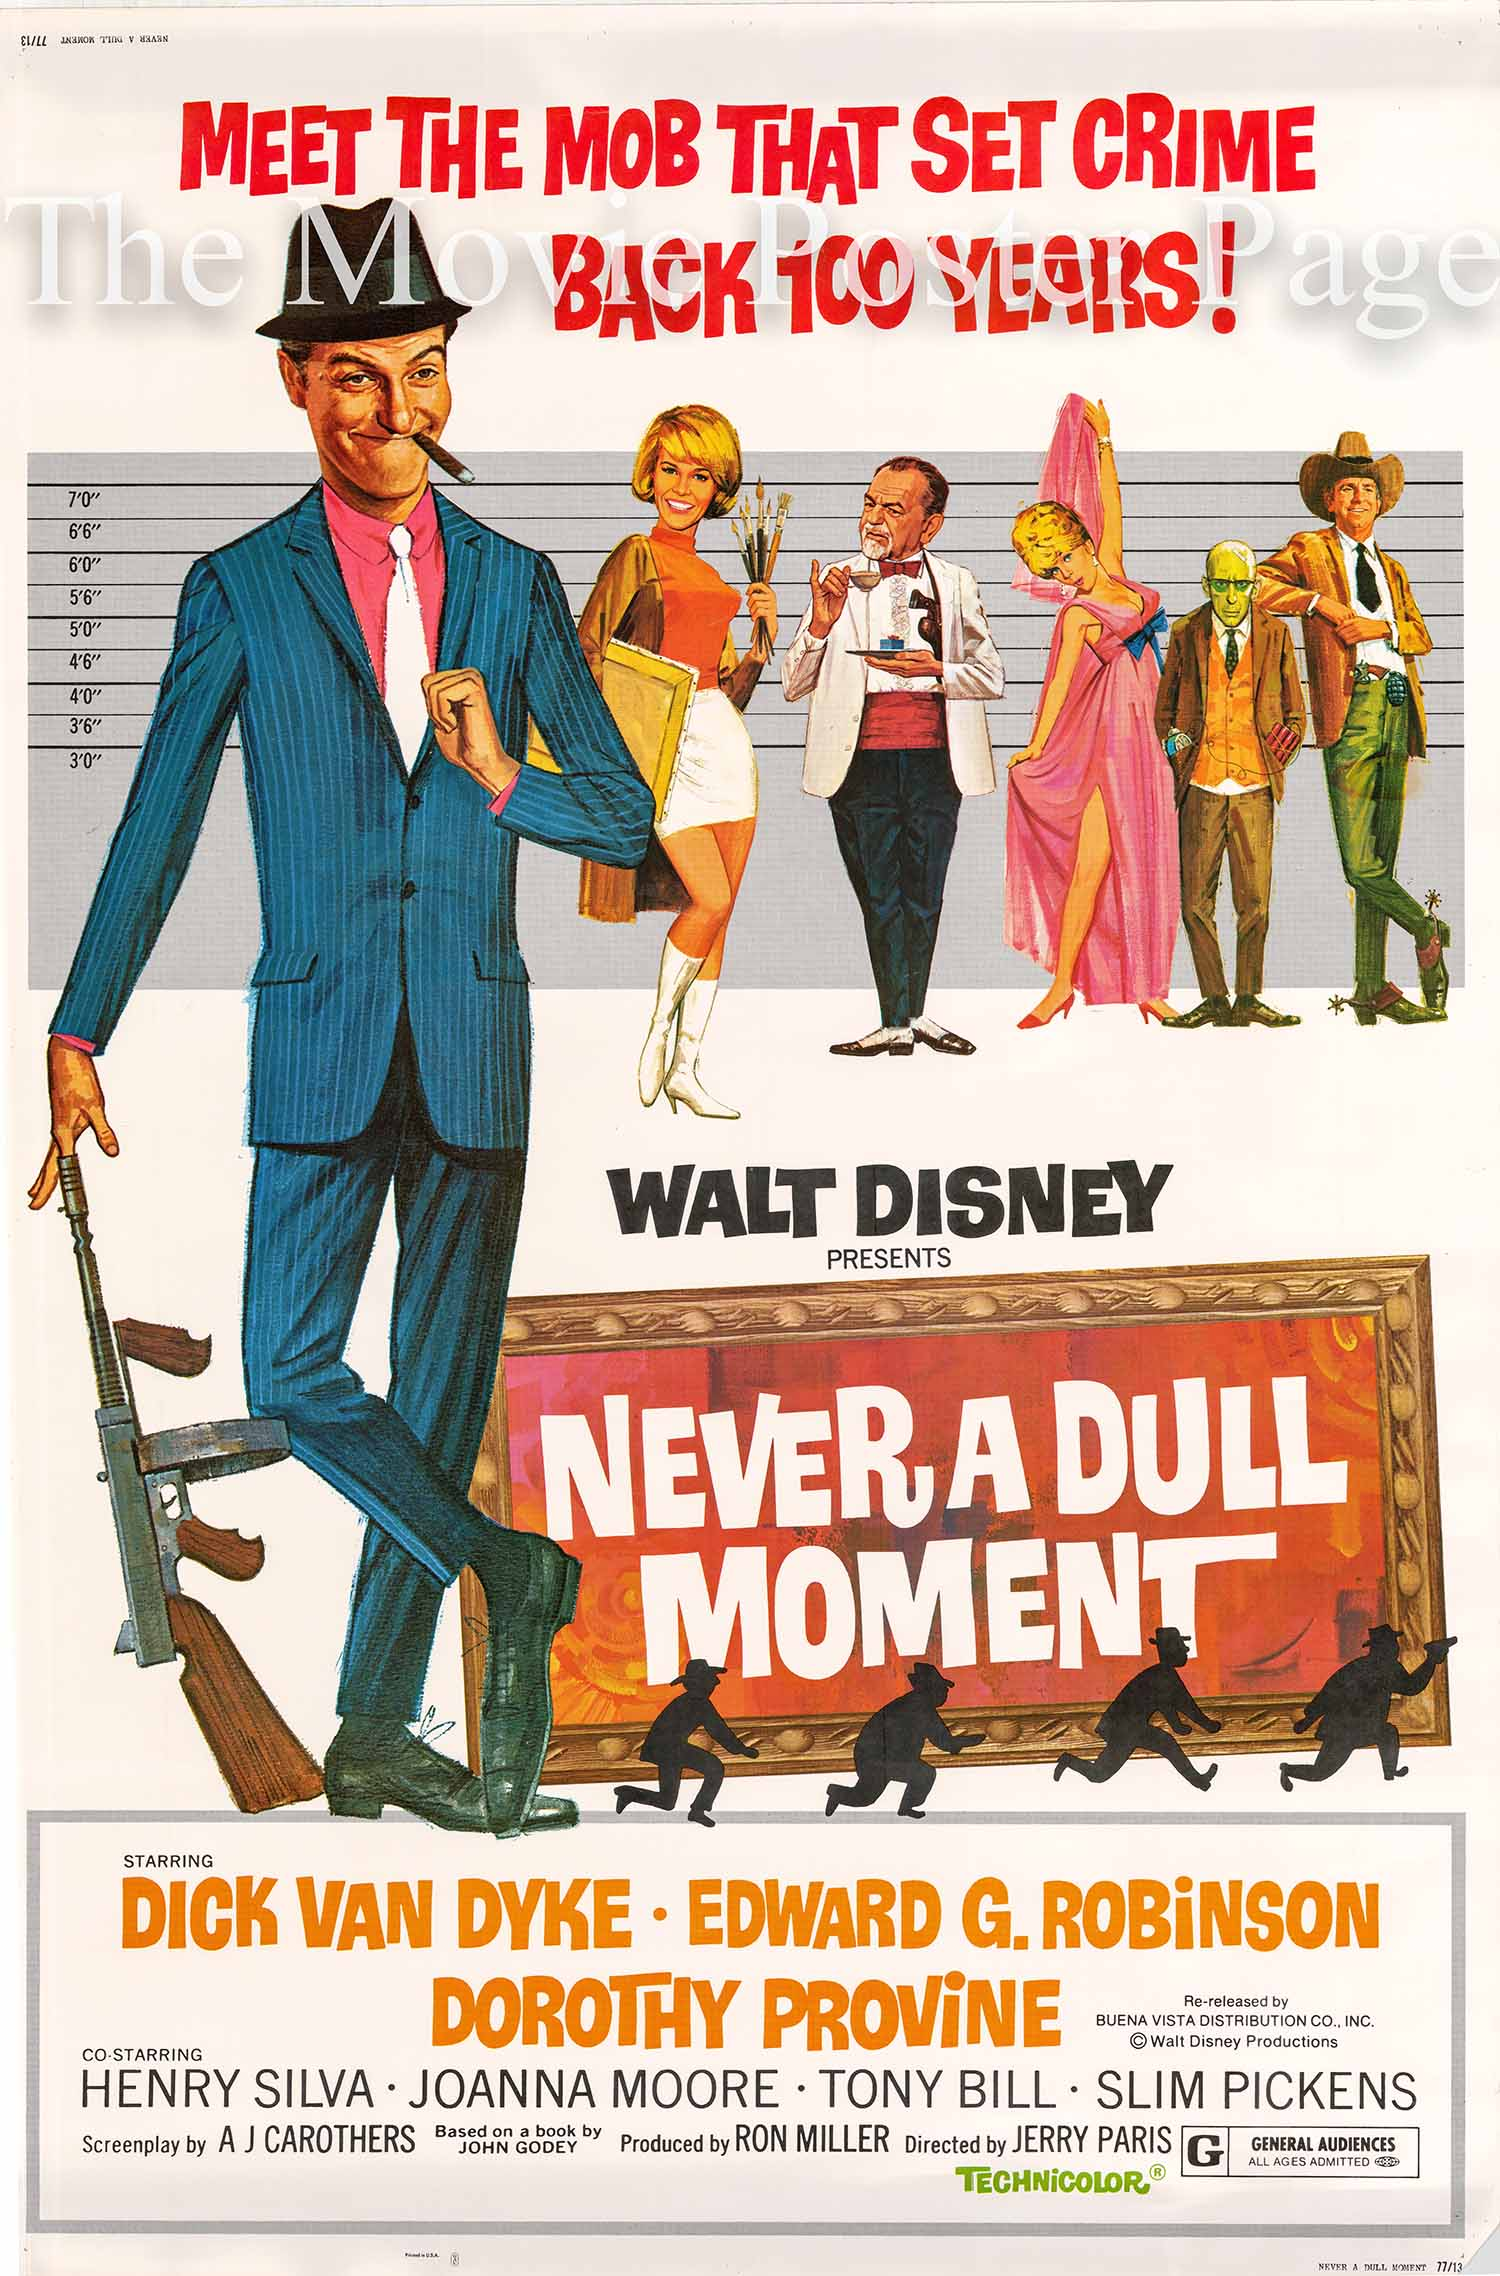 Pictured is a US 40x60 promotional poster for a 1977 rereleae of the 1968 Jerry Paris film Never a Dull Moment starring Dick Van Dyke.